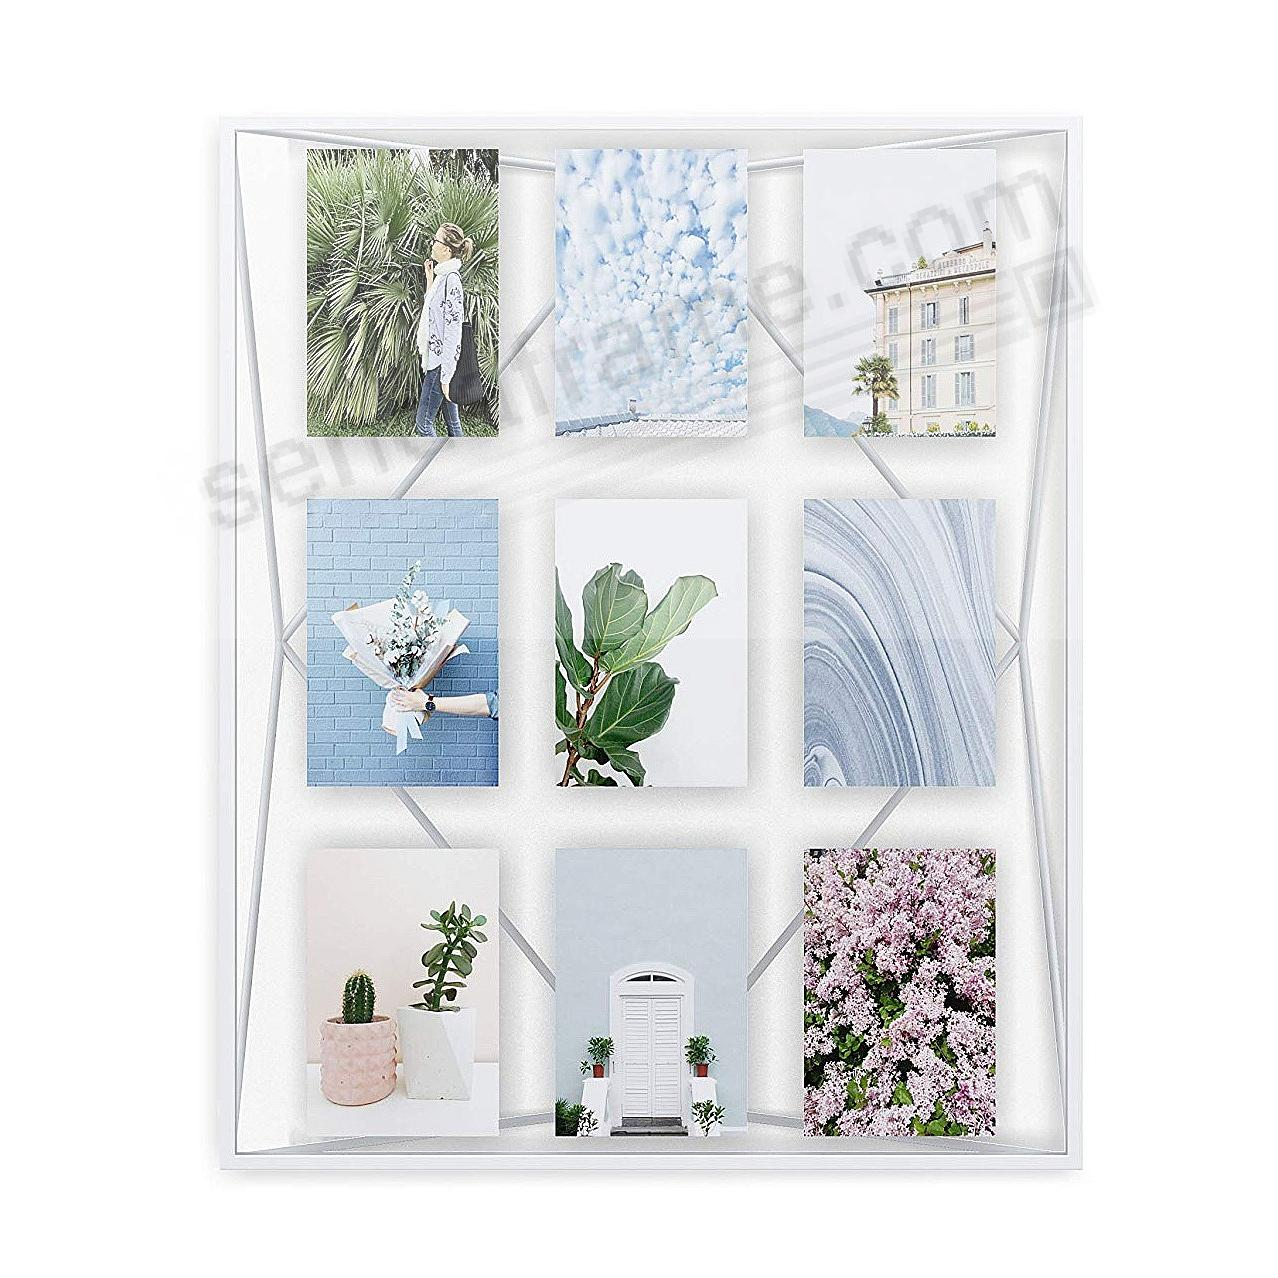 The Original PRISMA Photo GALLERY WHITE frame by Umbra®